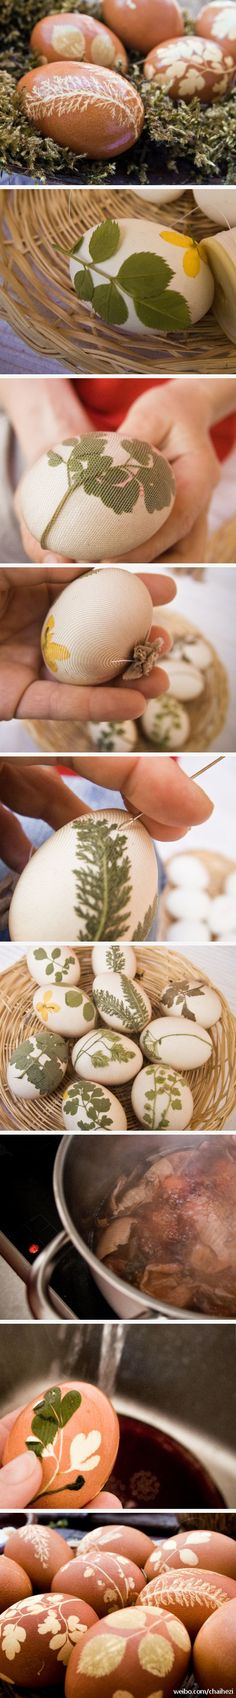 Stunning tea stained eggs for Easter